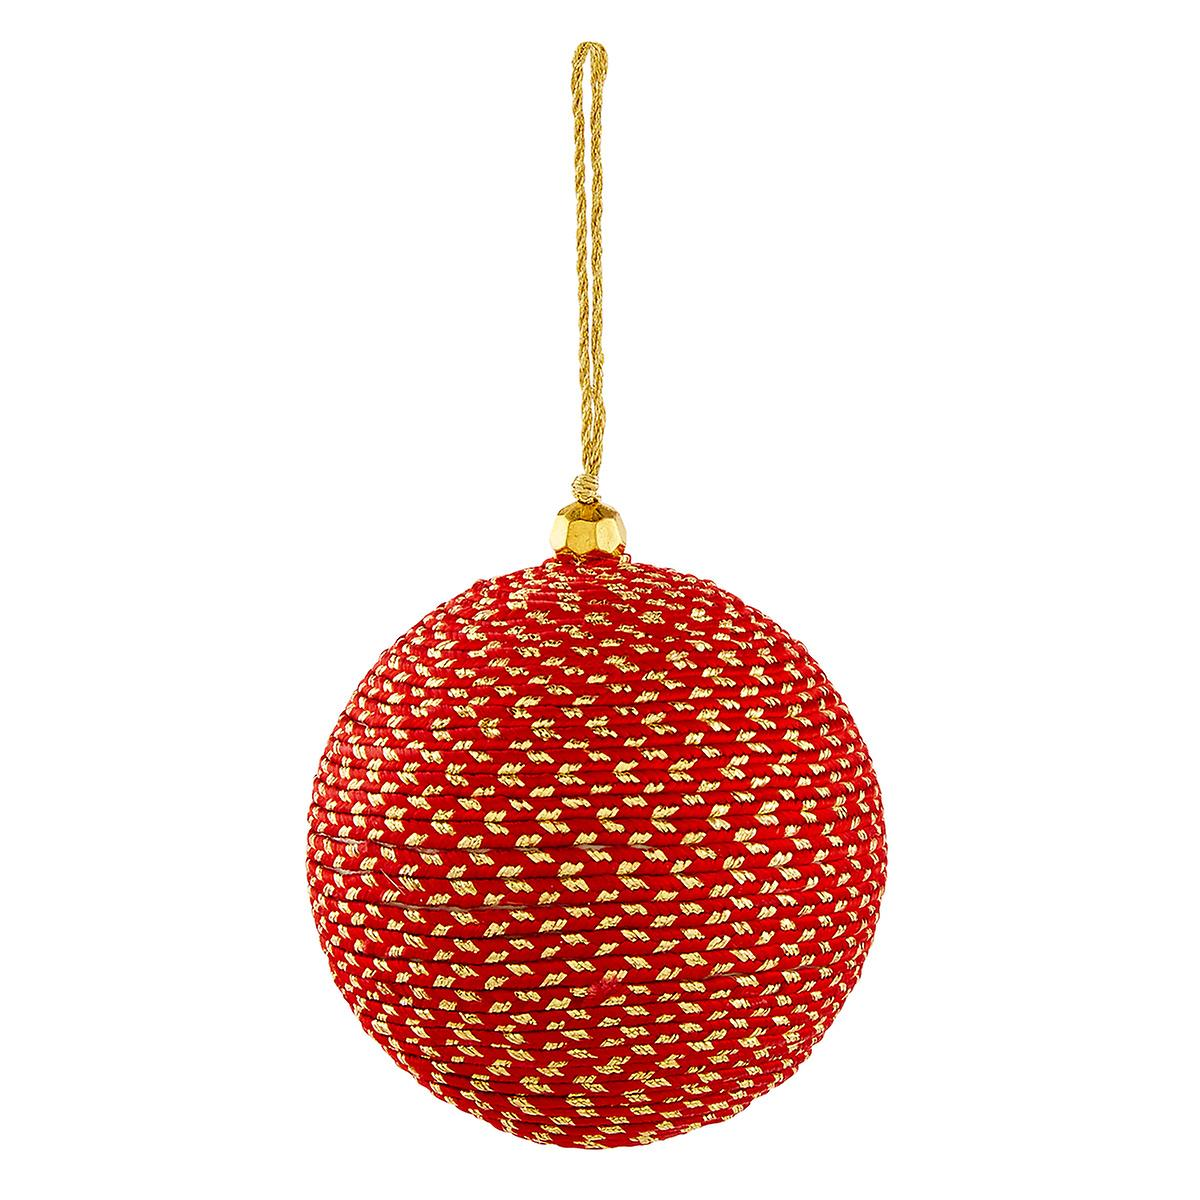 Twine Ball Tie-On Ornament